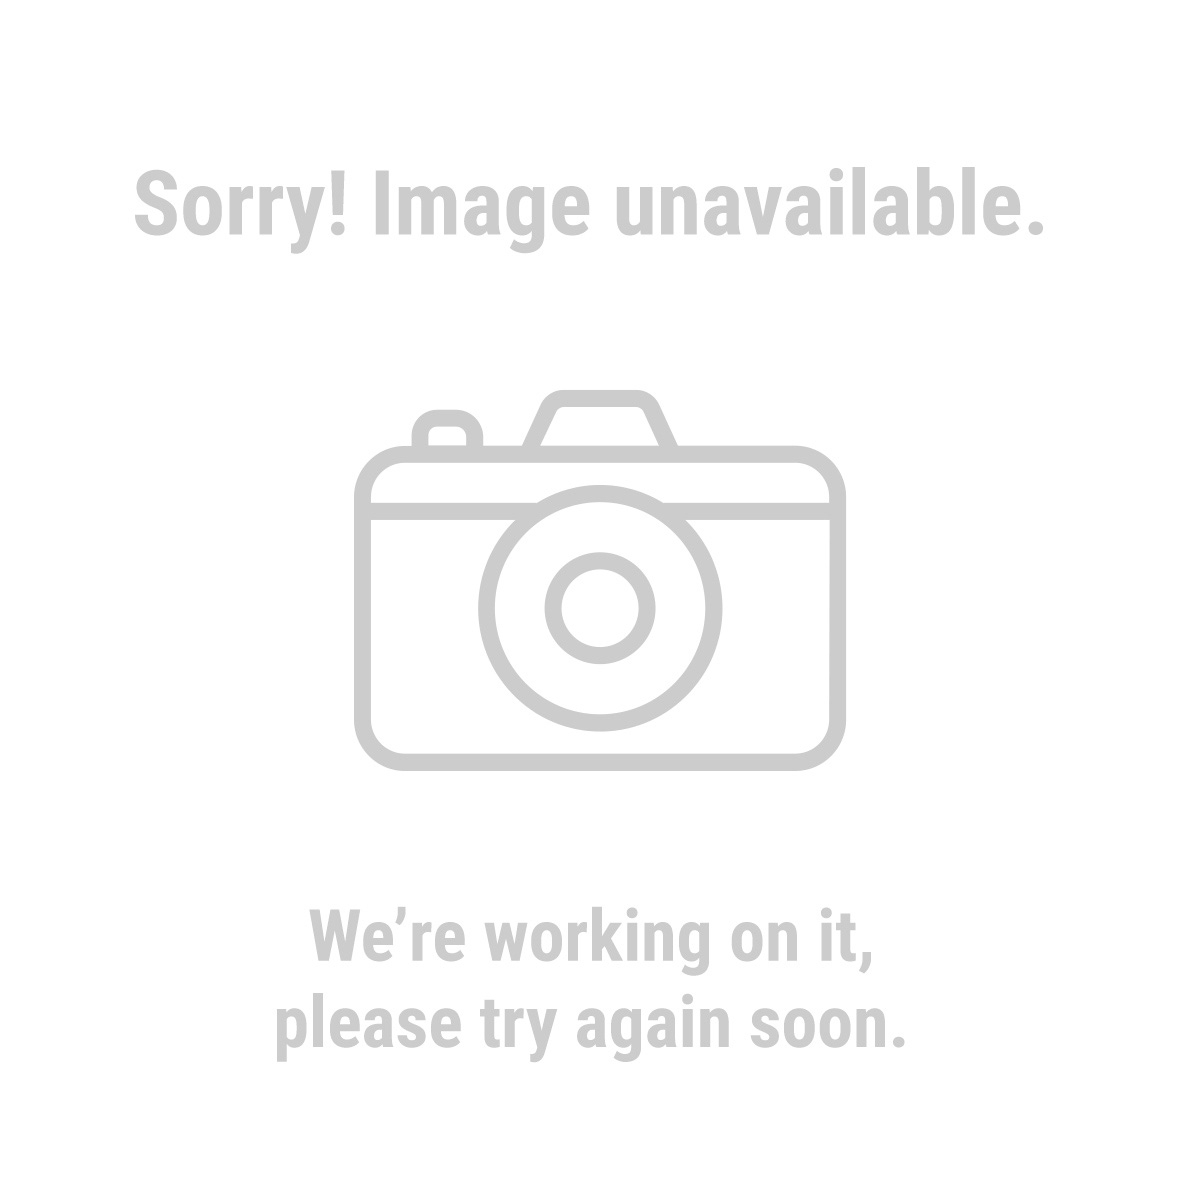 harbor freight hammer drill. harbor freight hammer drill n